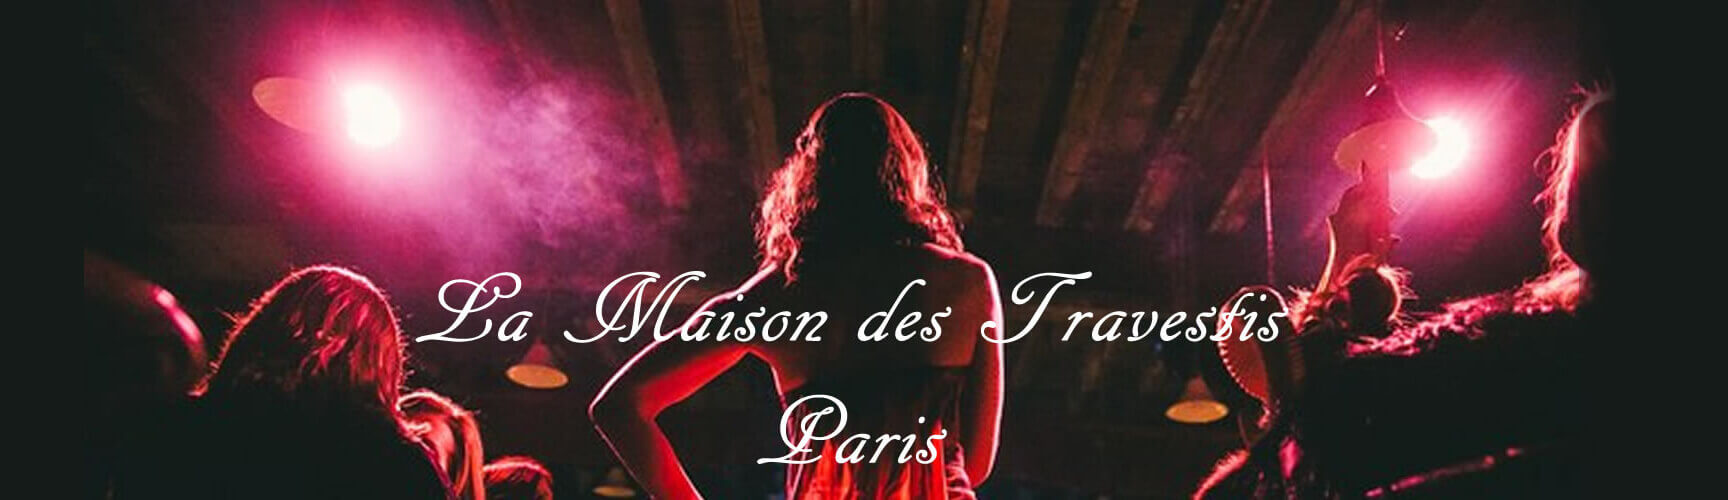 La-Maison-des-Travestis-Paris